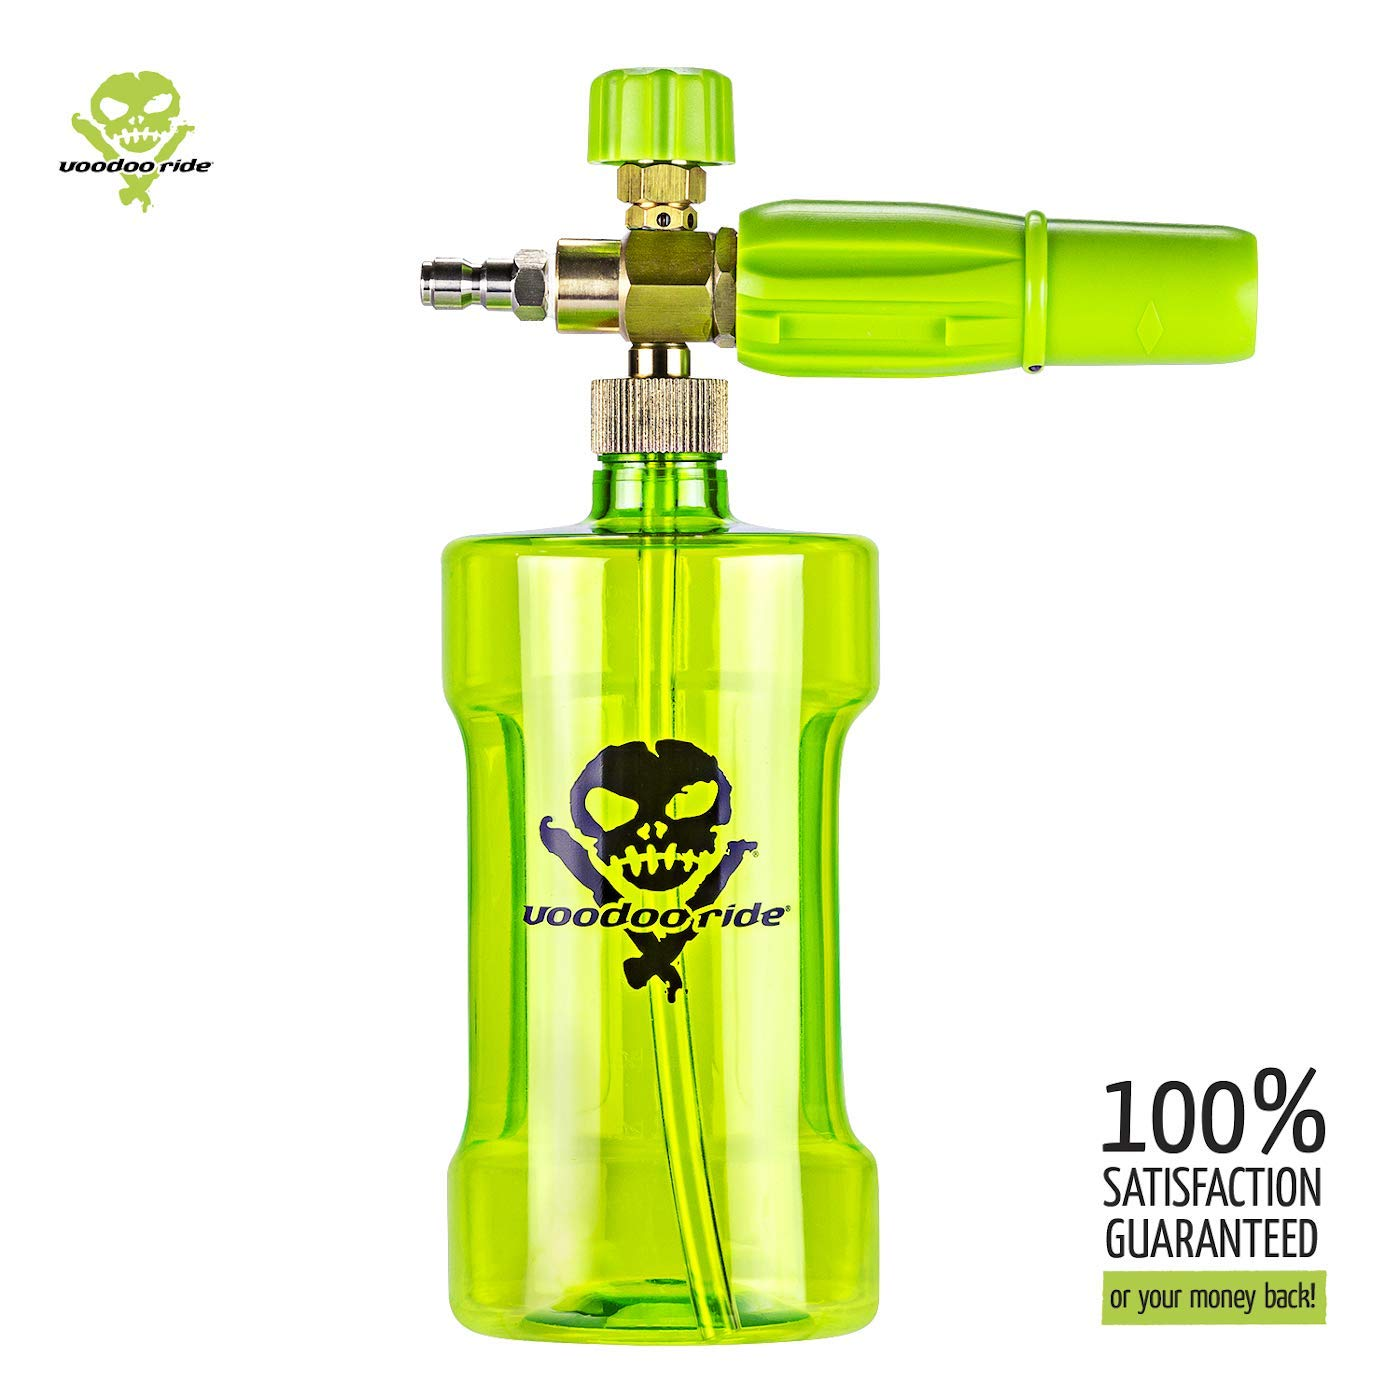 """Voodoo Ride VR77FC Power Pressure Washer Foam Cannon Gun with Adjustable Sprayer and Soap Intake Valve for High Pressure Washing 